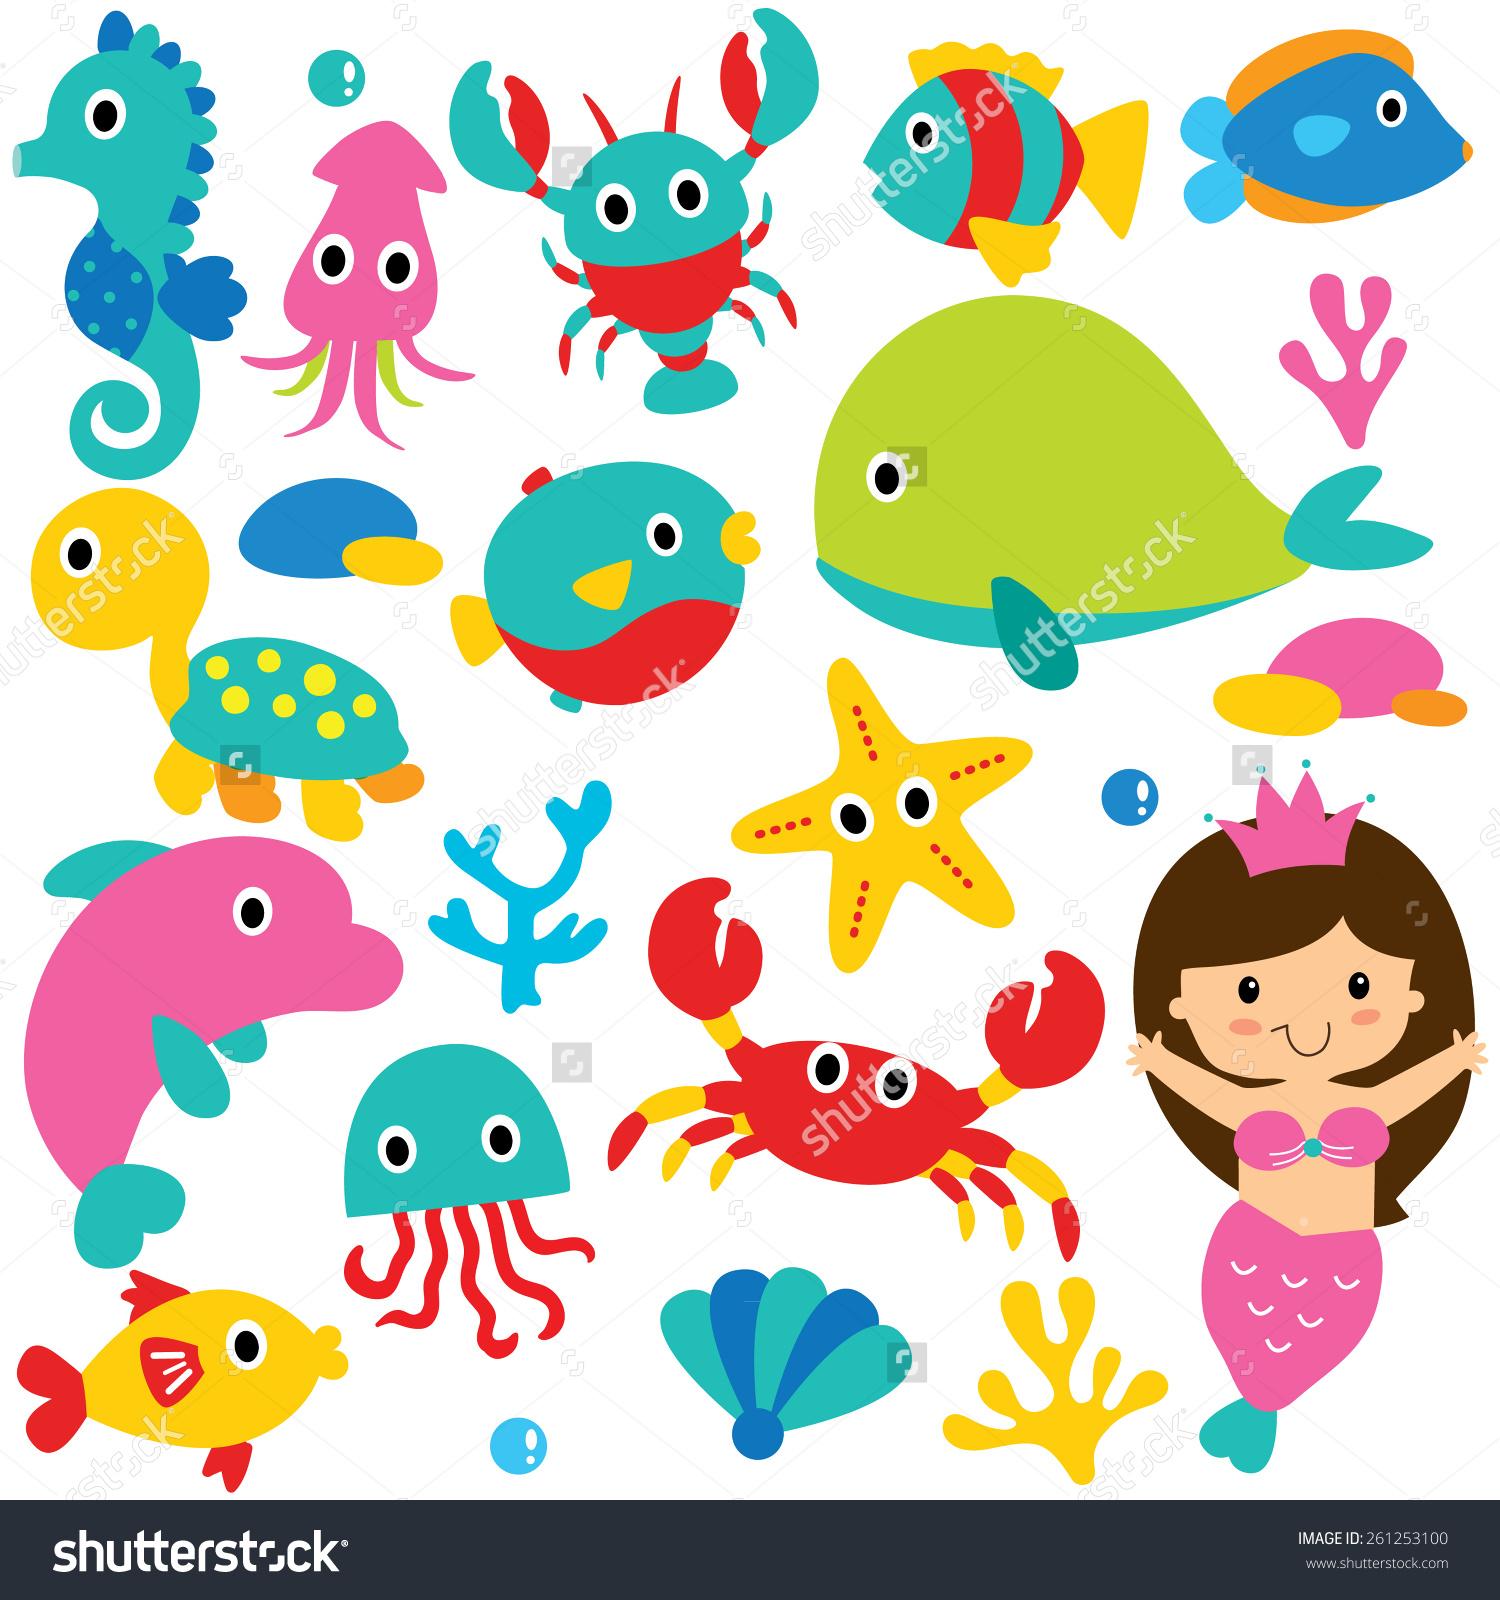 Clipart Sea Animals. Save To A Lightbox-Clipart Sea Animals. Save to a lightbox-9